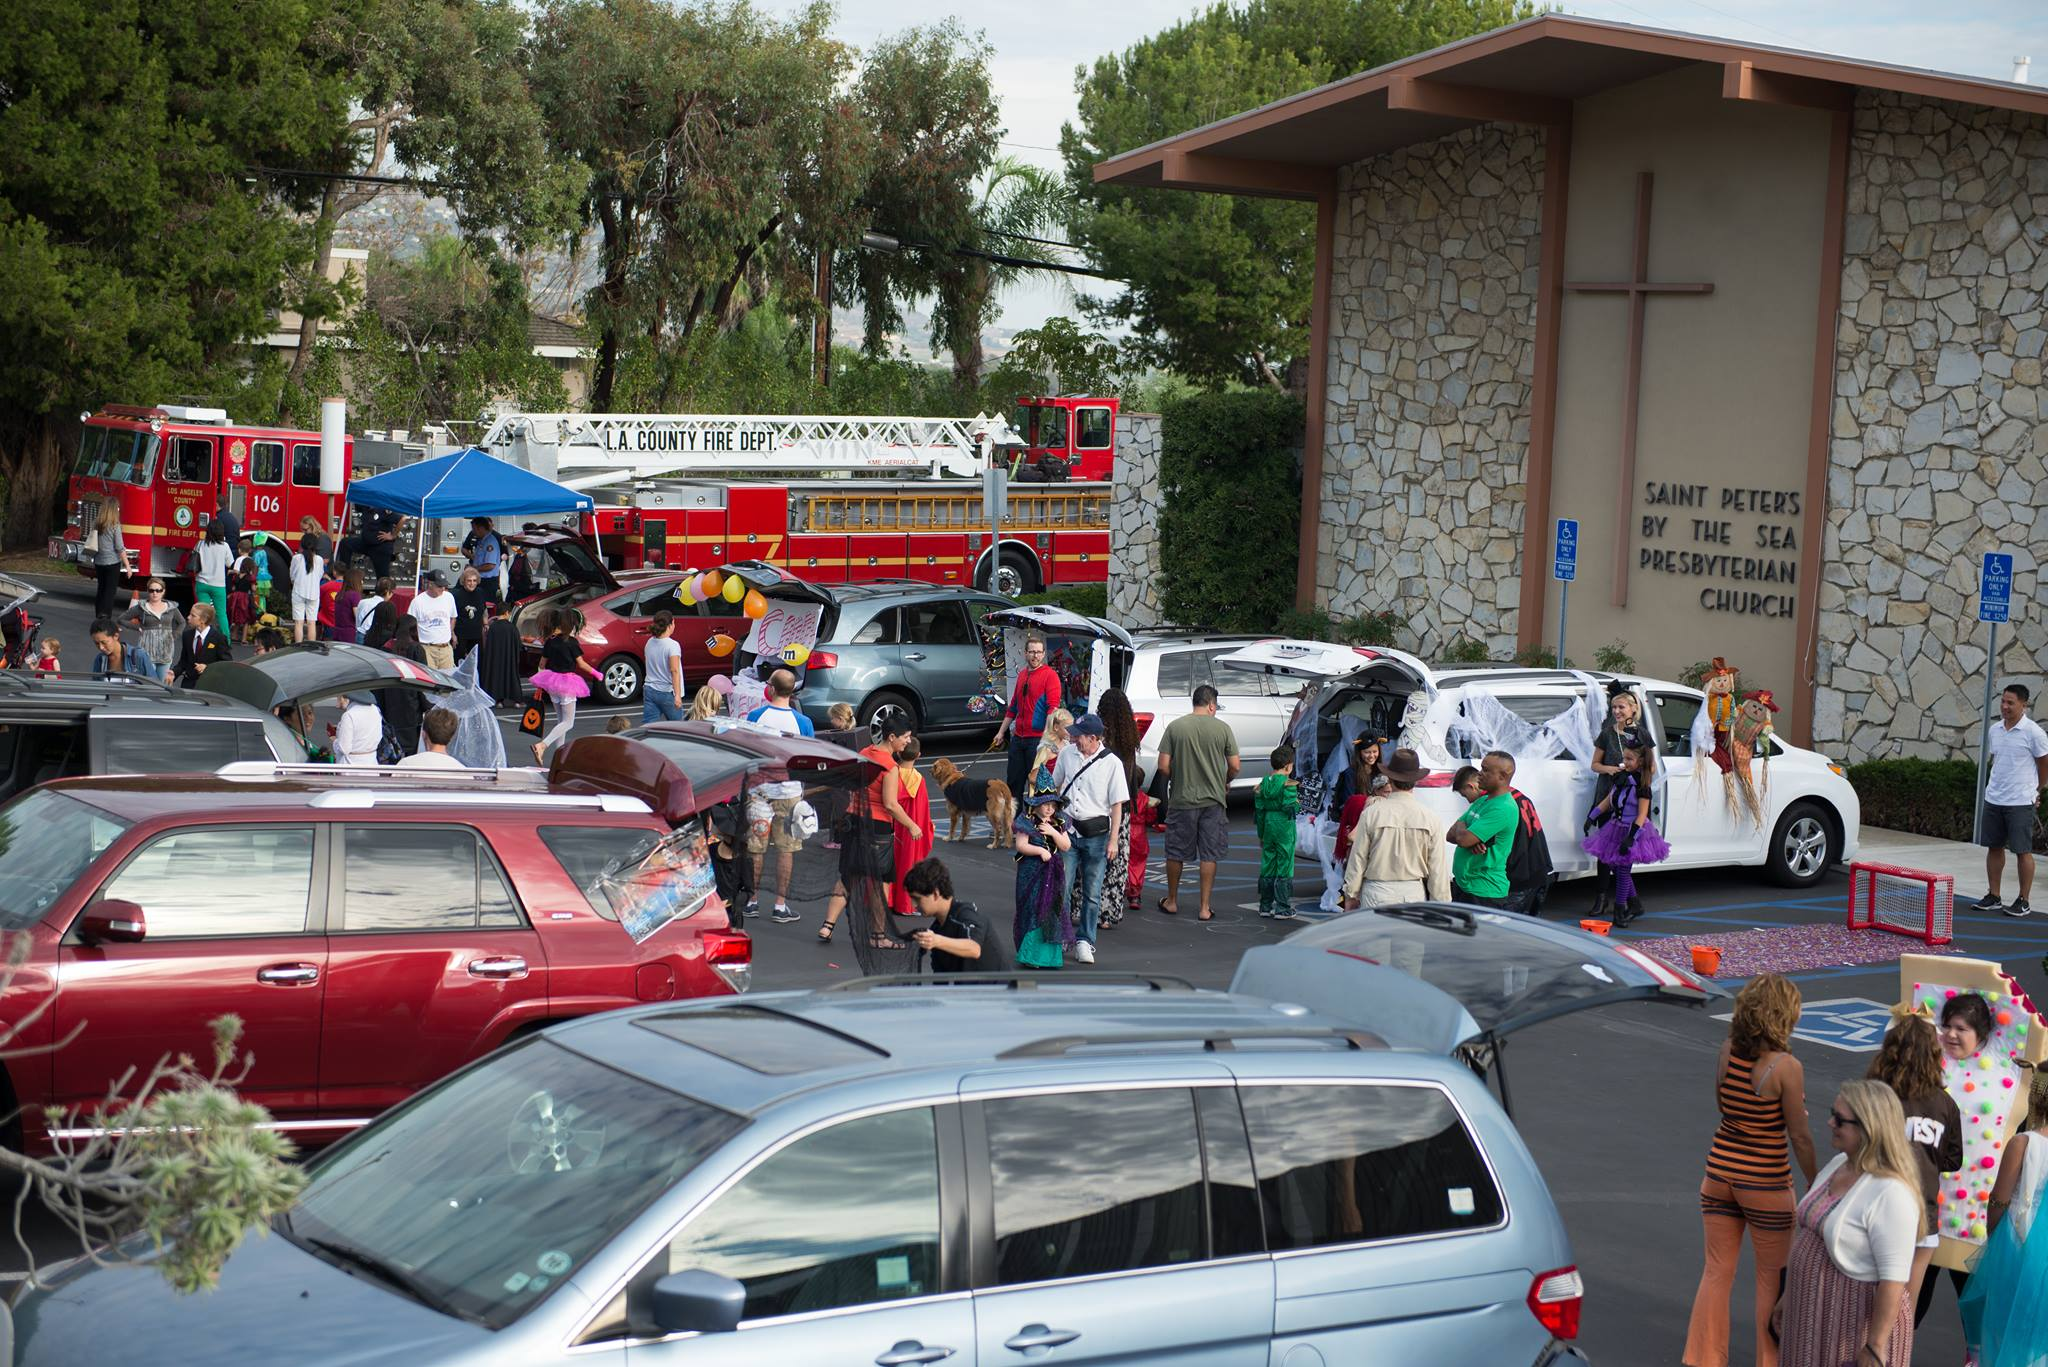 trunk or treat2015parkinglotshotwfire engine.jpg